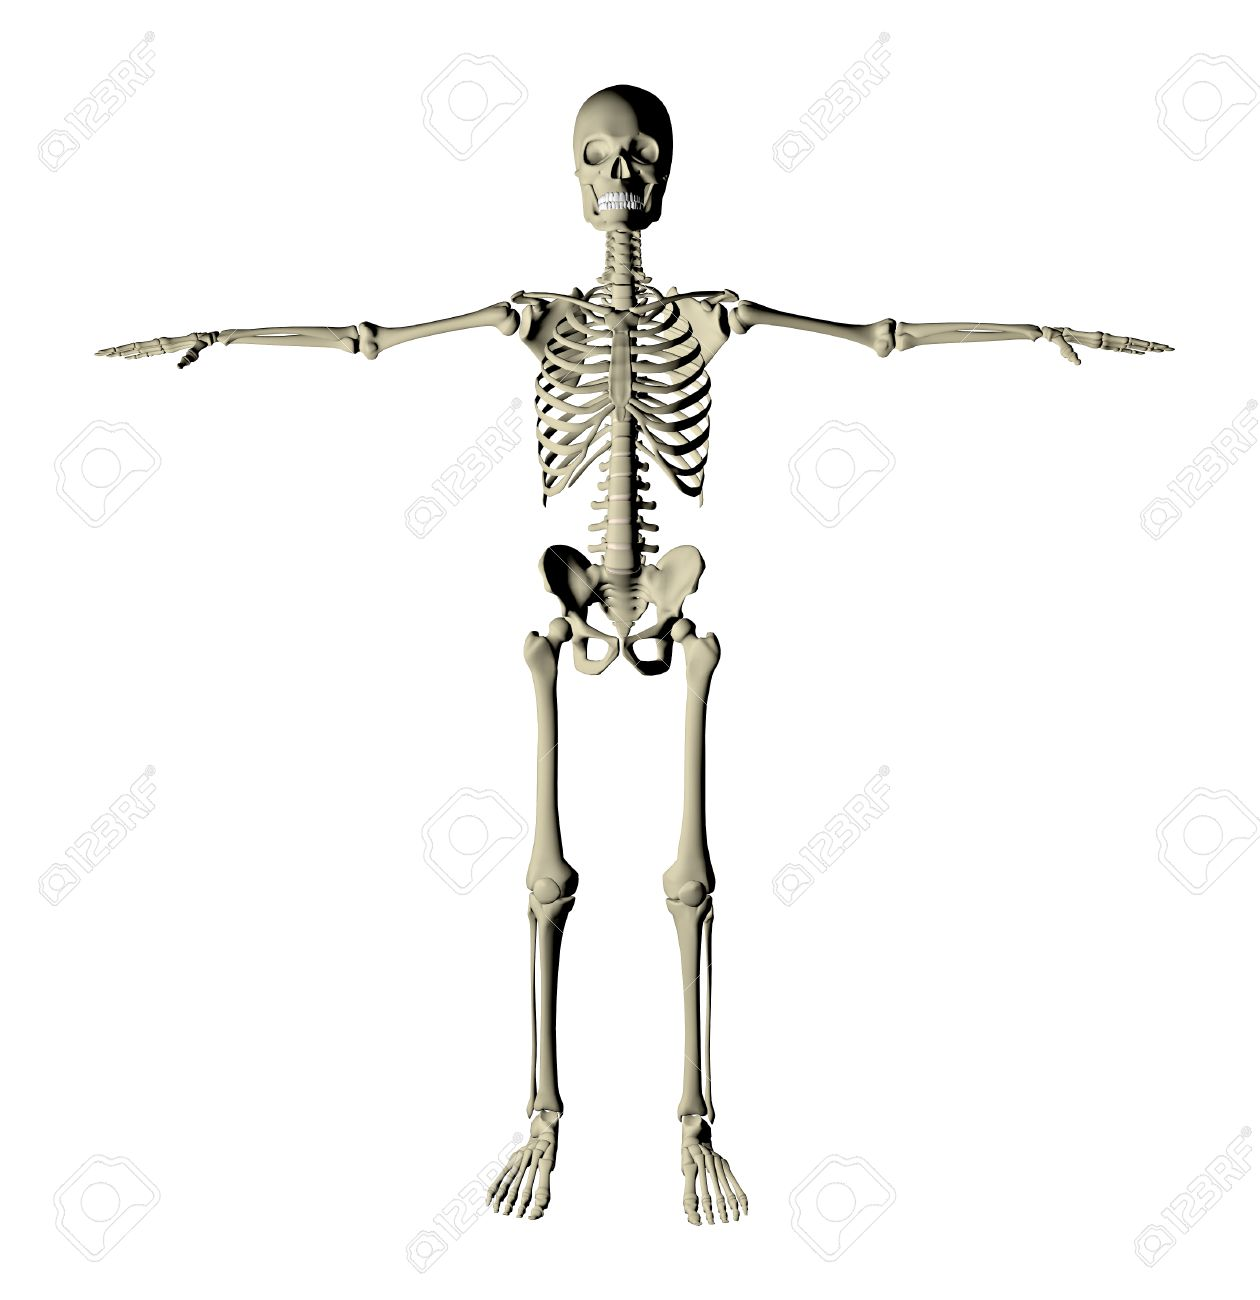 Skeleton And Bones Of A Human Body On A White Background Stock Photo